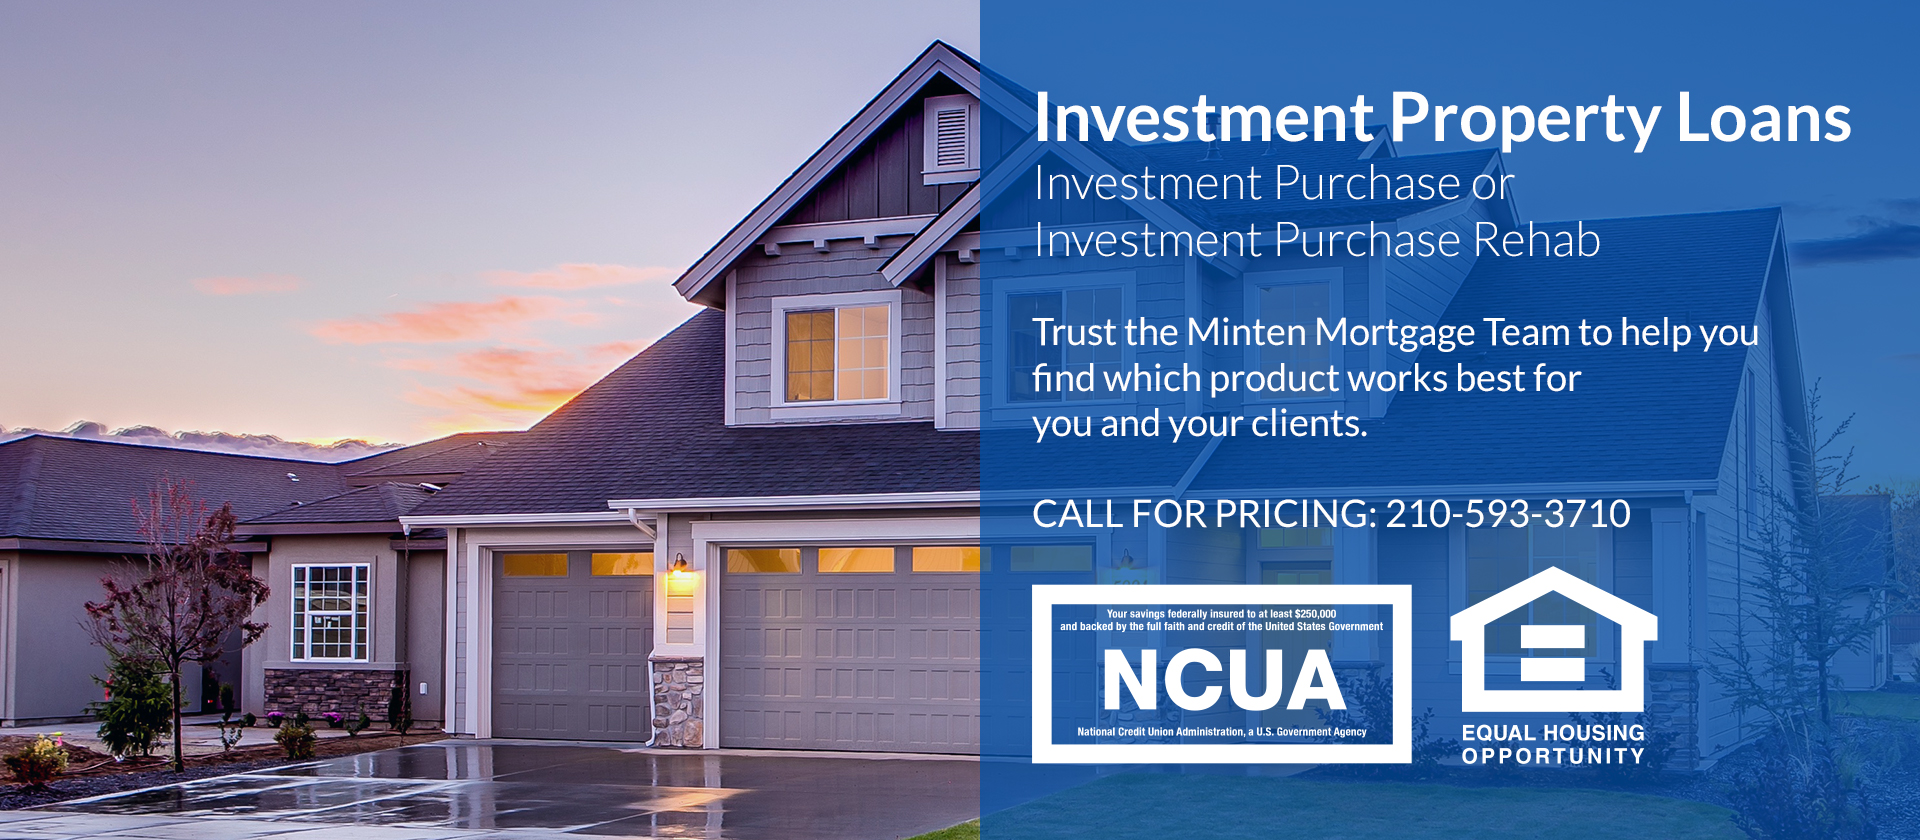 Investment Property Loans: Investment Purchase or Investment Purchase Rehab. Trust the Minten Mortgage Team to help you find which product works best for you and your clients. Call for Pricing: 210-593-3710.